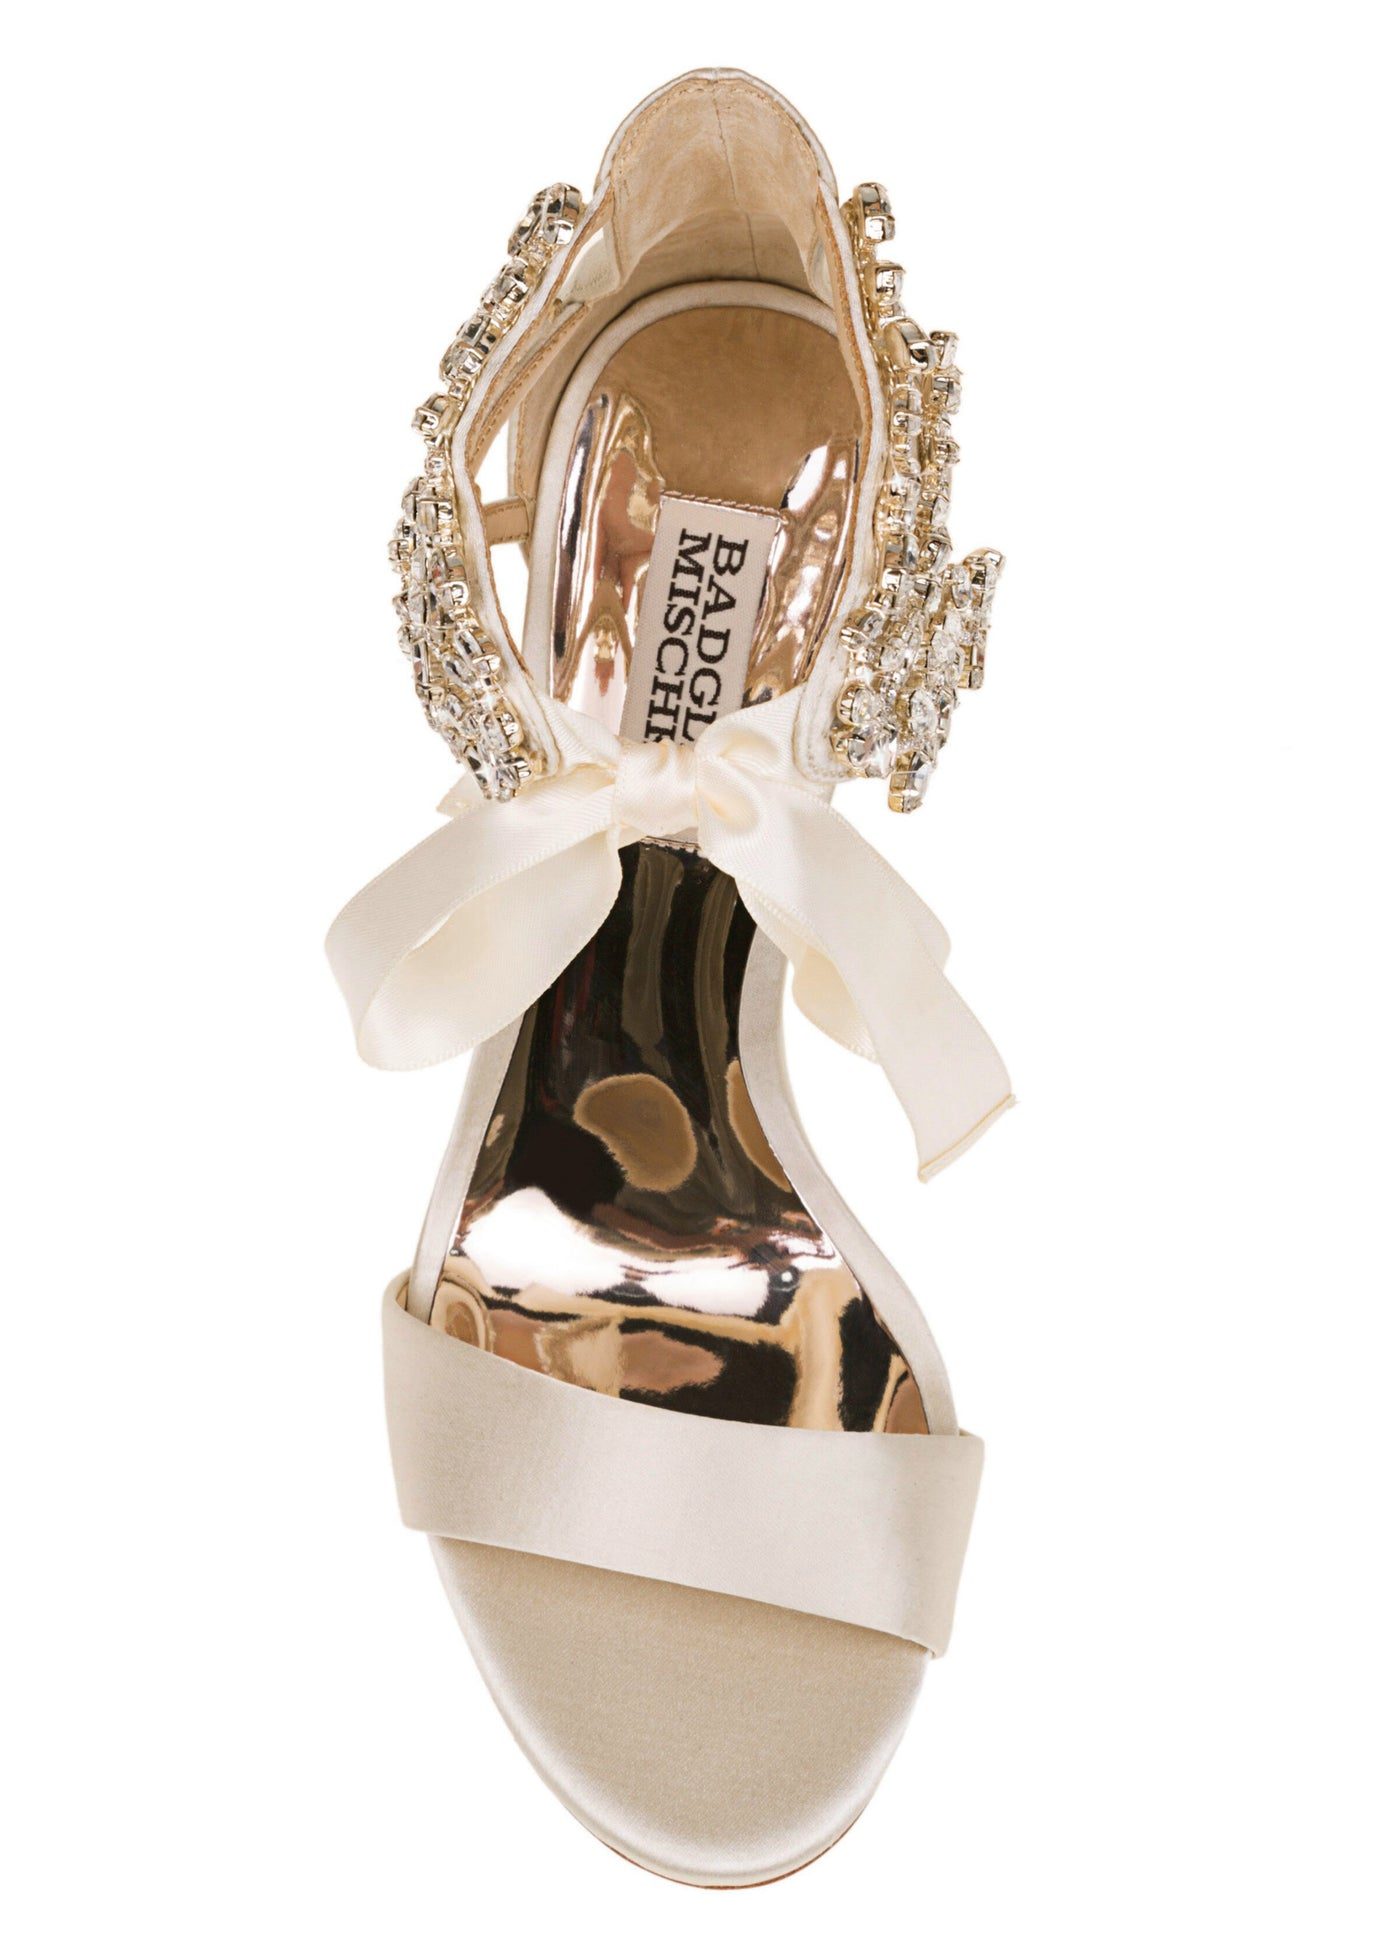 Everafter - New, Shoes, Badgley Mischka - Eternal Bridal